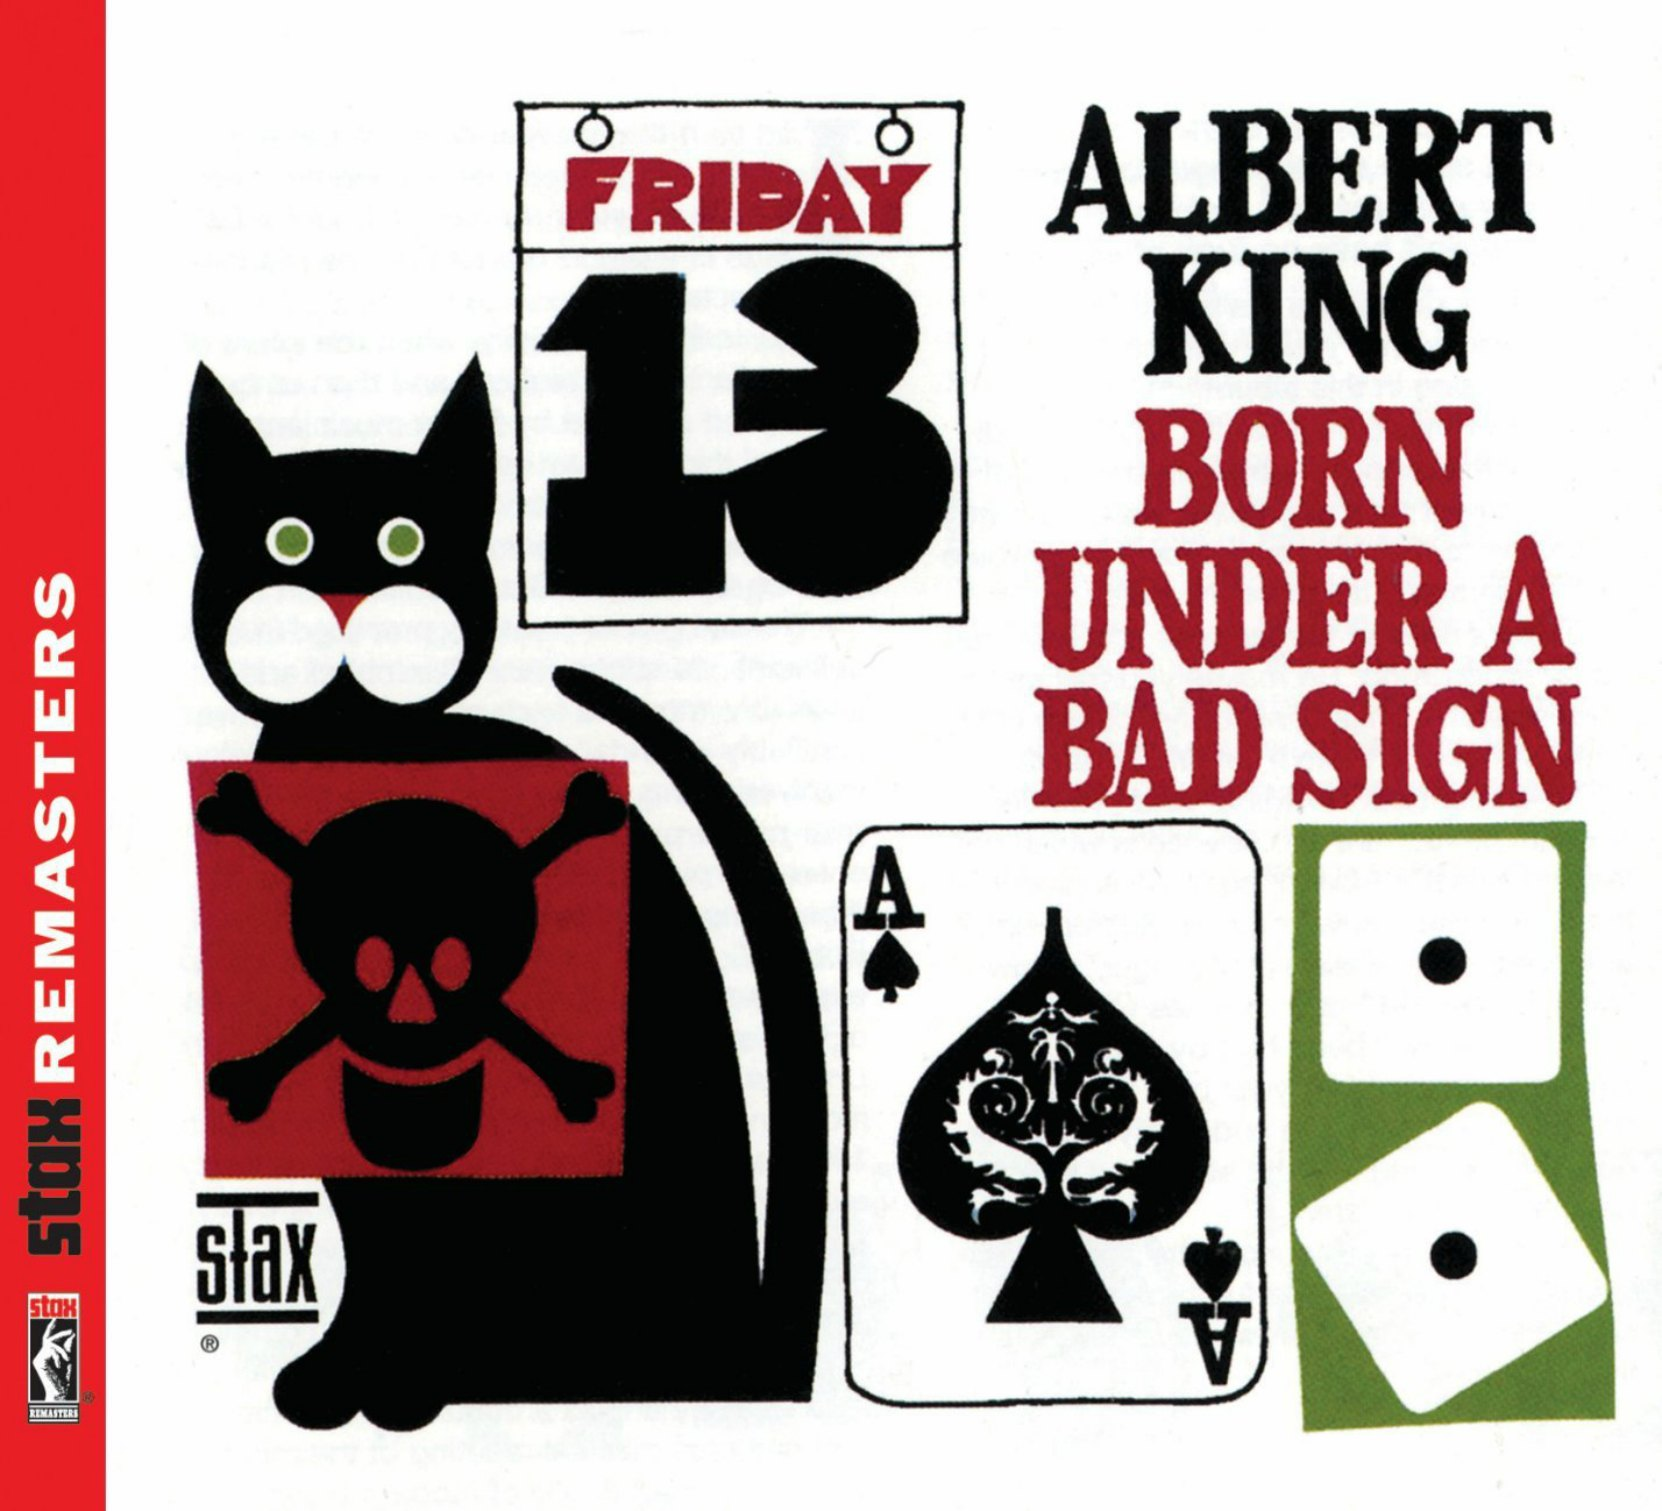 CD cover, Albert King, Born Under A Bad Sign, released on Stax Records.